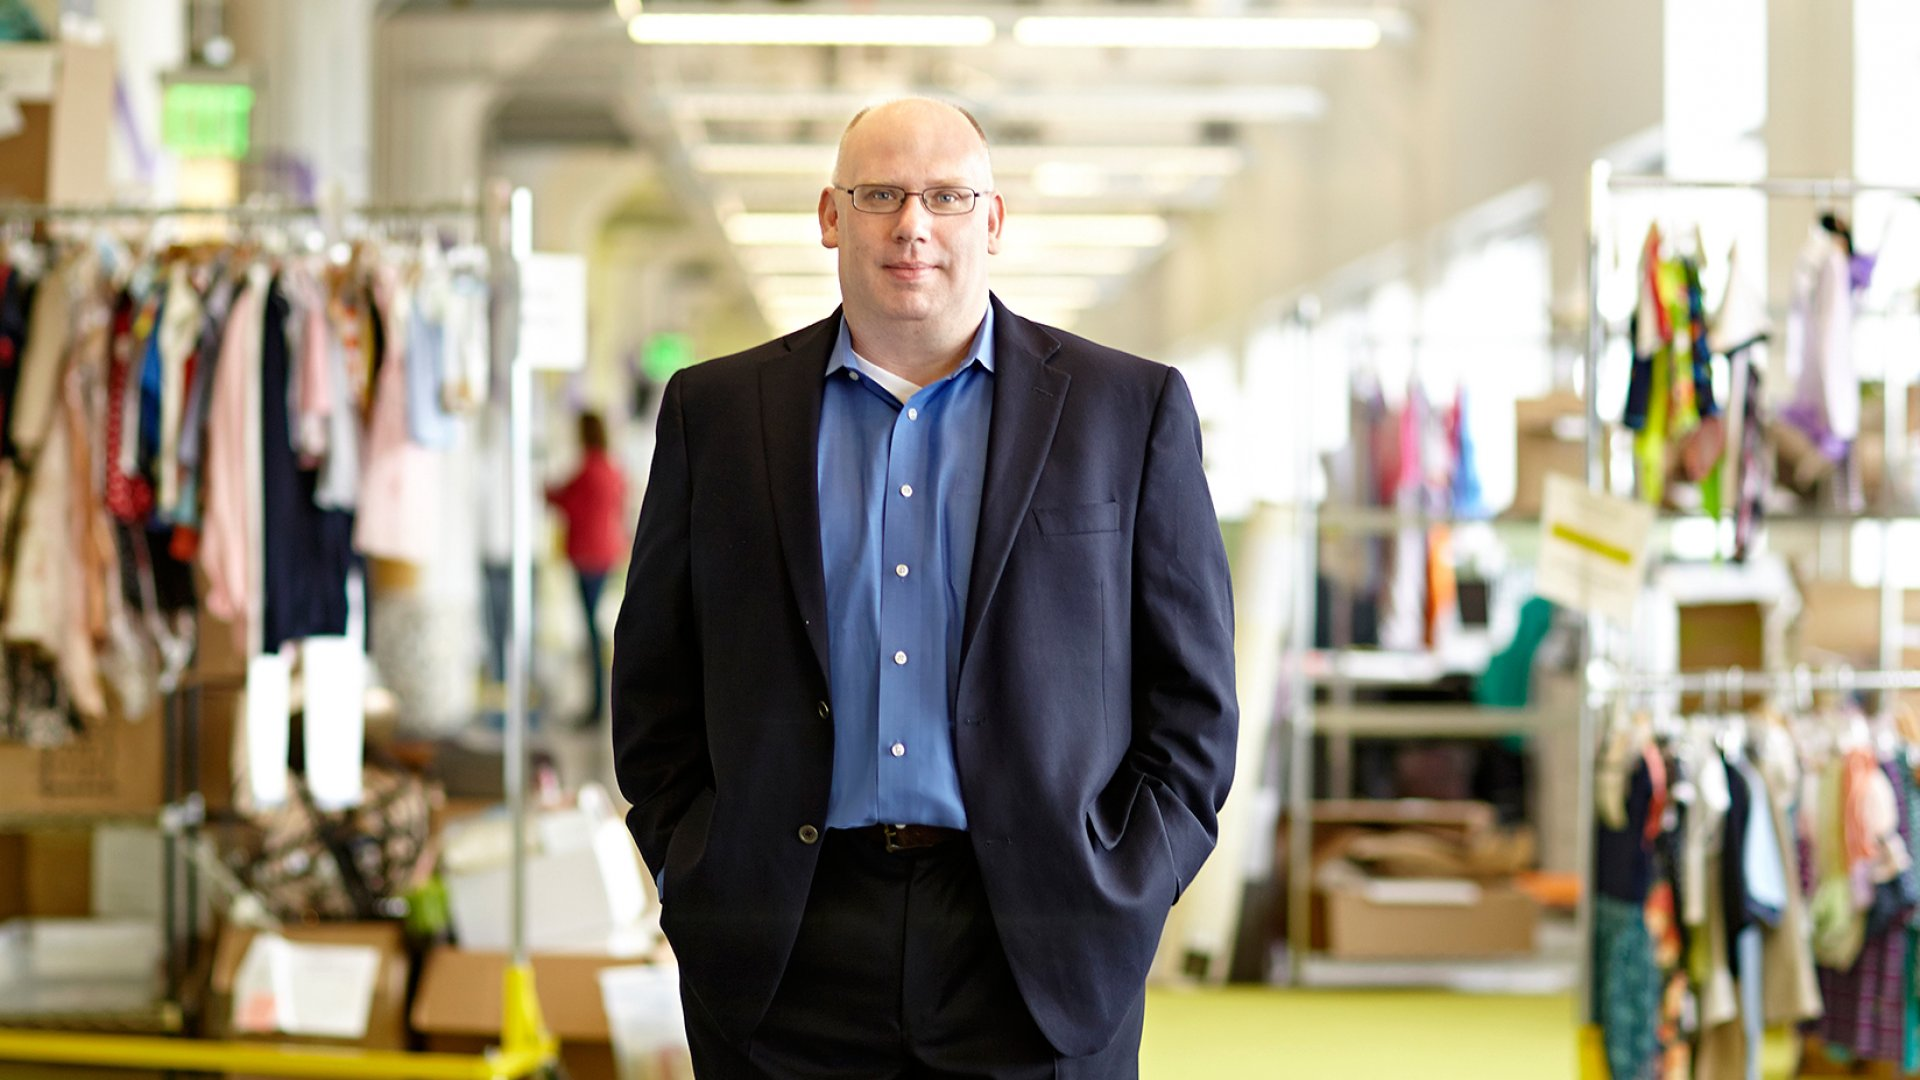 Darrell Cavens, CEO of Zulily